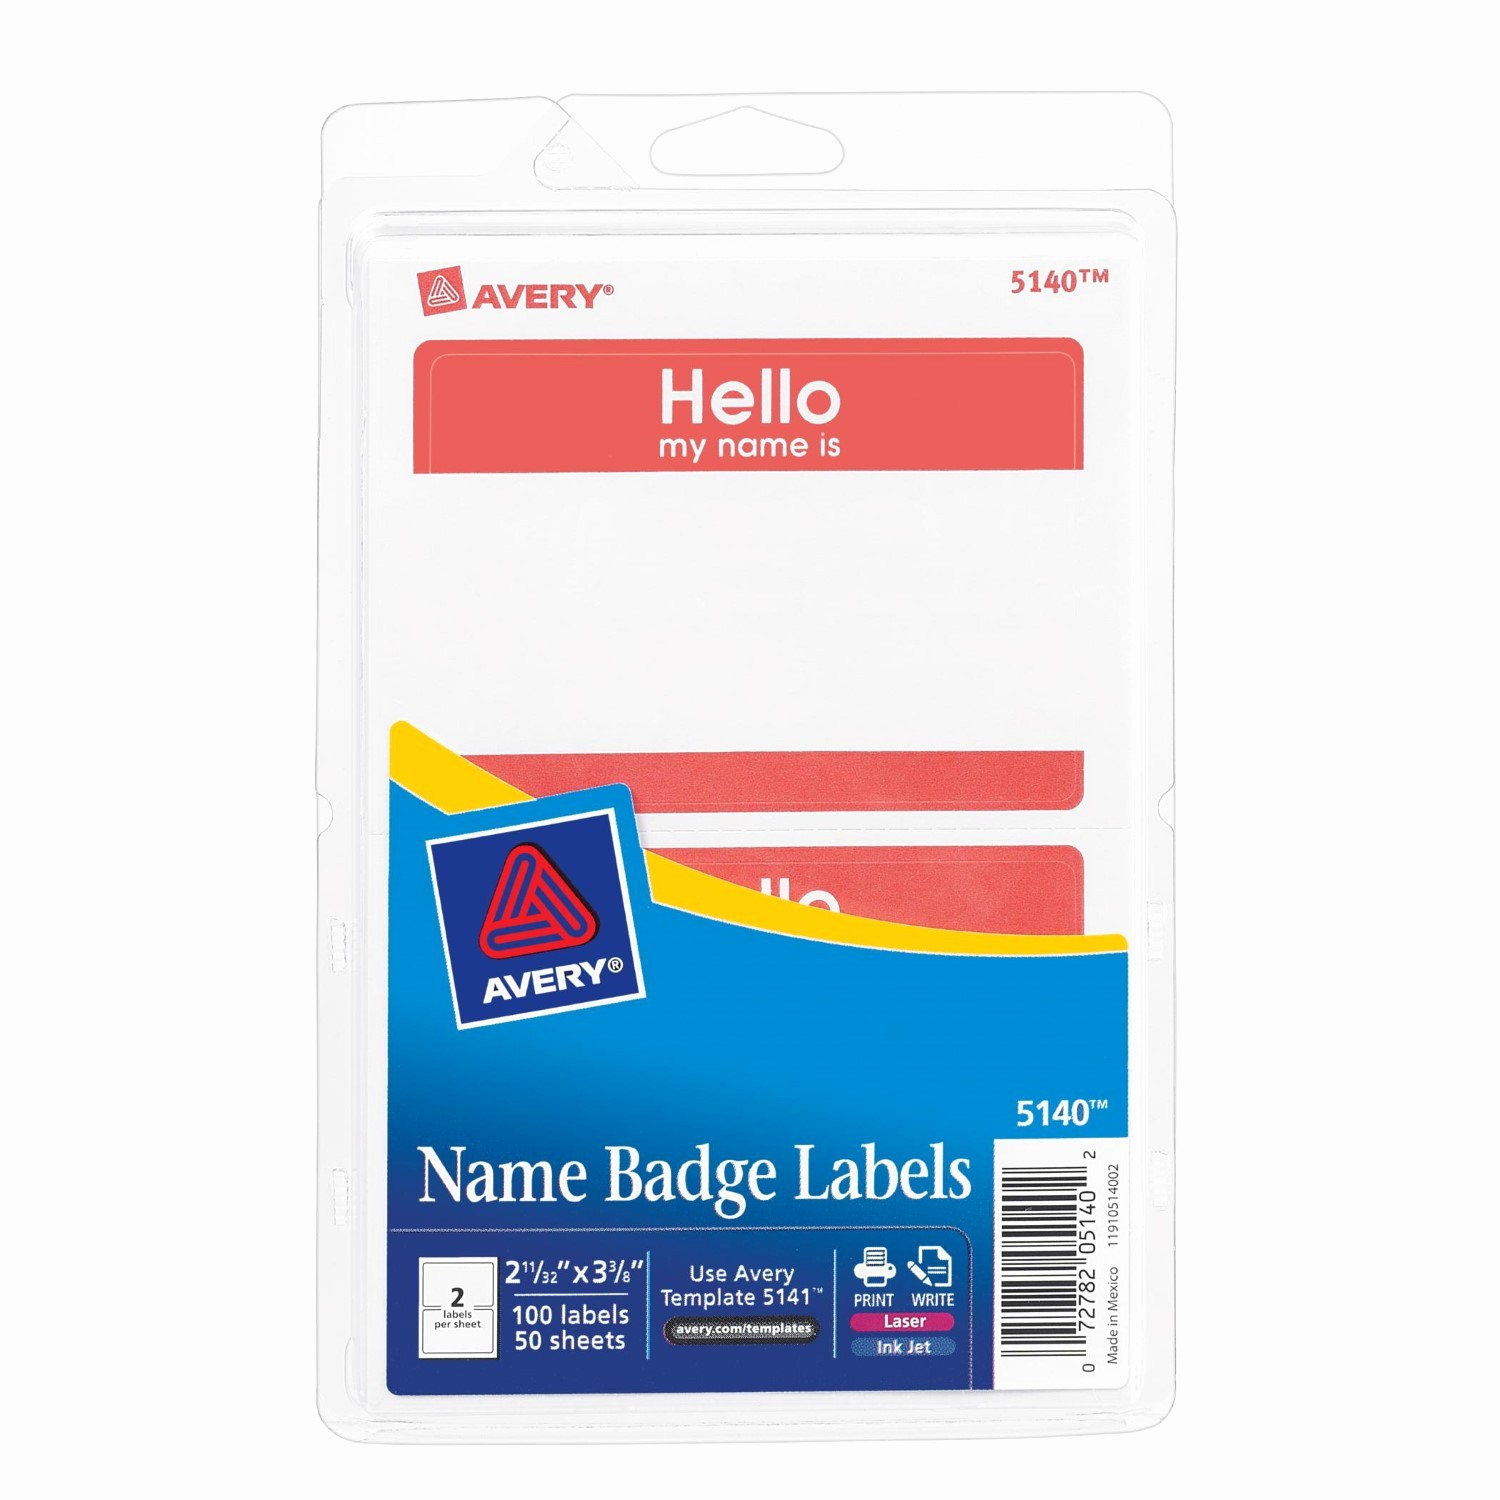 Avery Name Badge Labels Template Inspirational Avery Border Print or Write Name Badge Labels 2 34 X 3 38